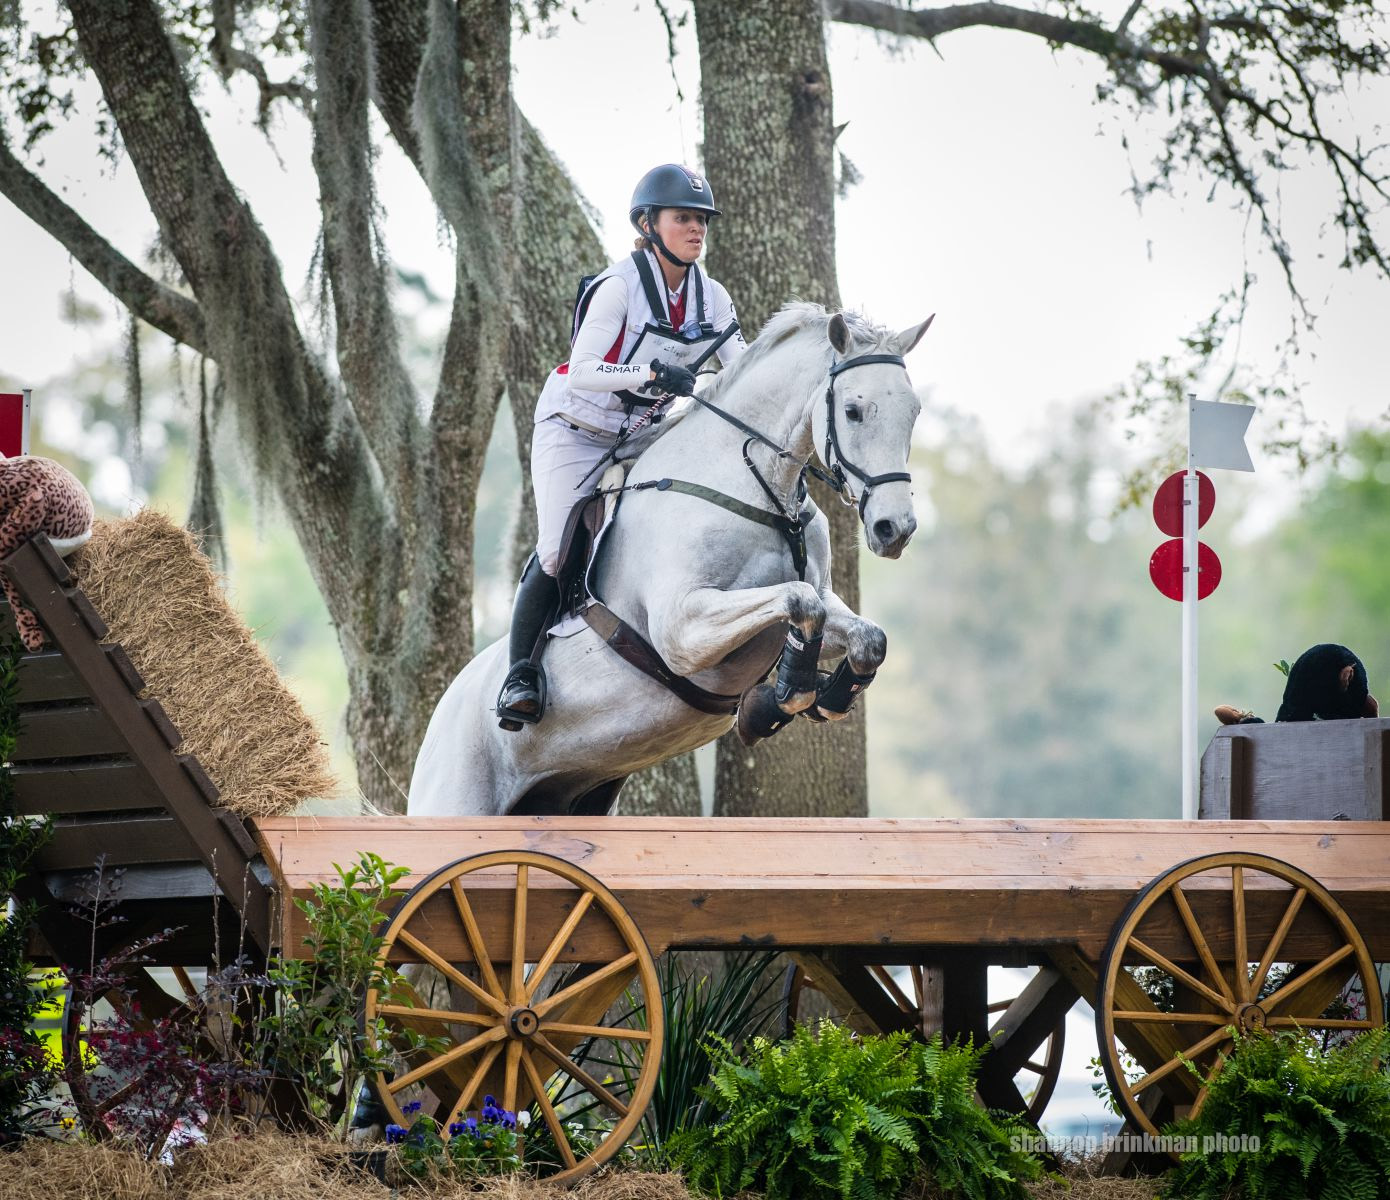 Selena O'Hanlon & Foxwood High at Red Hills International Horse Trials